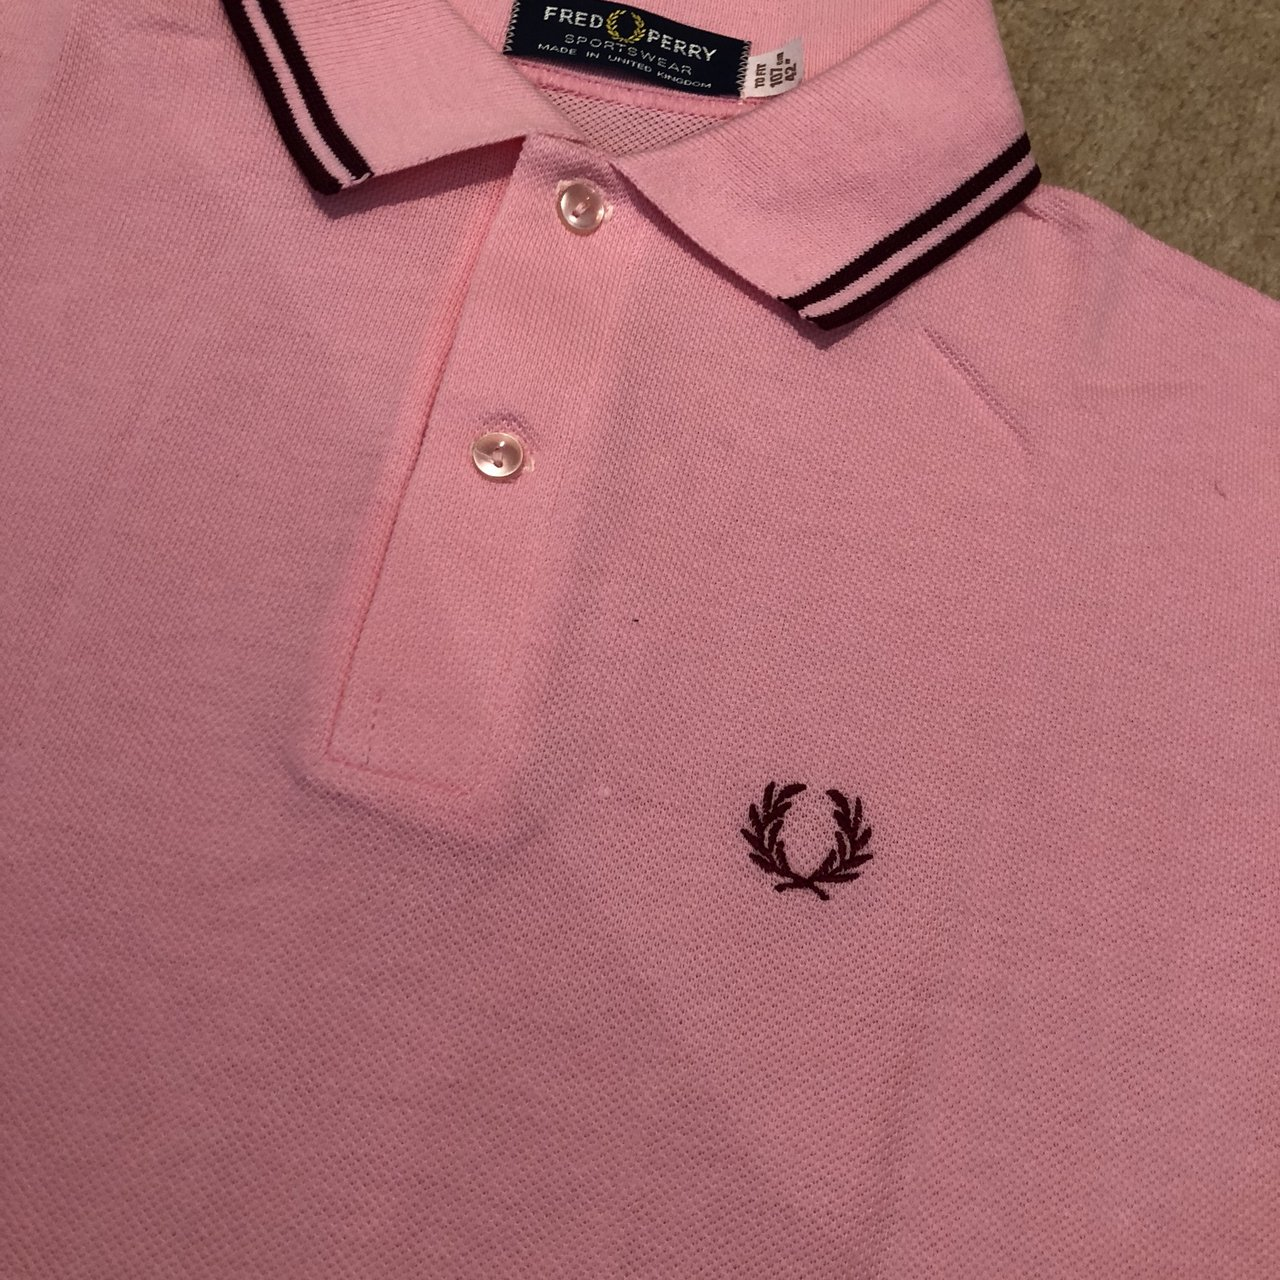 e5b5a12fc @supersnic123. 9 months ago. London, United Kingdom. Unworn vintage Fred  Perry pink/burgundy trim short sleeved polo shirt.